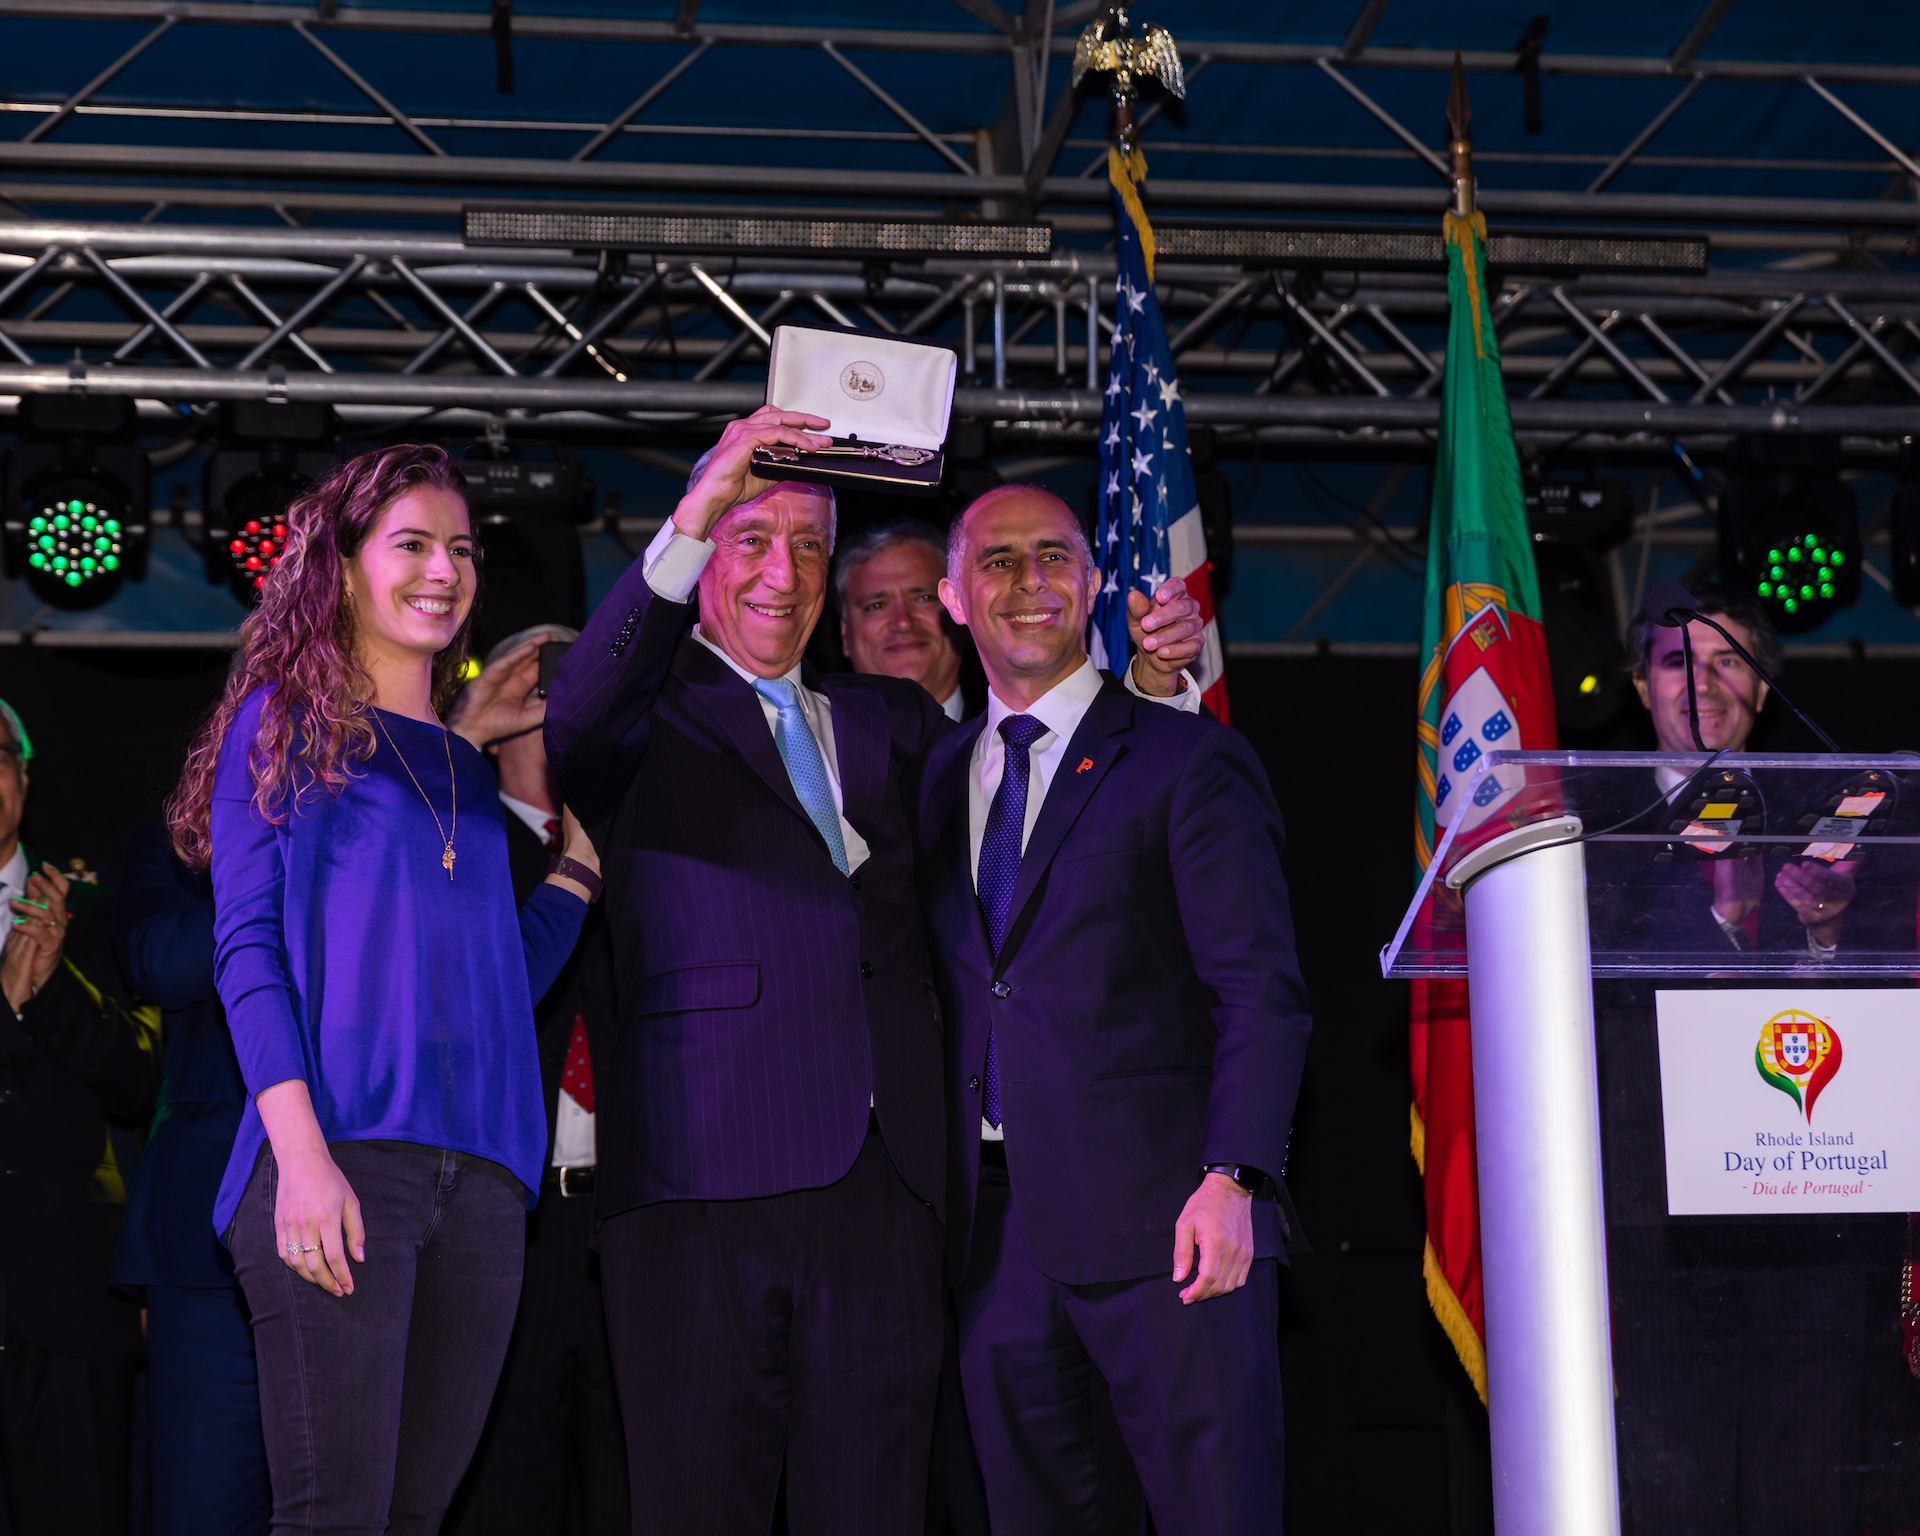 providence-mayor-jorge-elorza-presents-the-key-to-the-city-to-portuguese-president-marcelo-rebelo-de